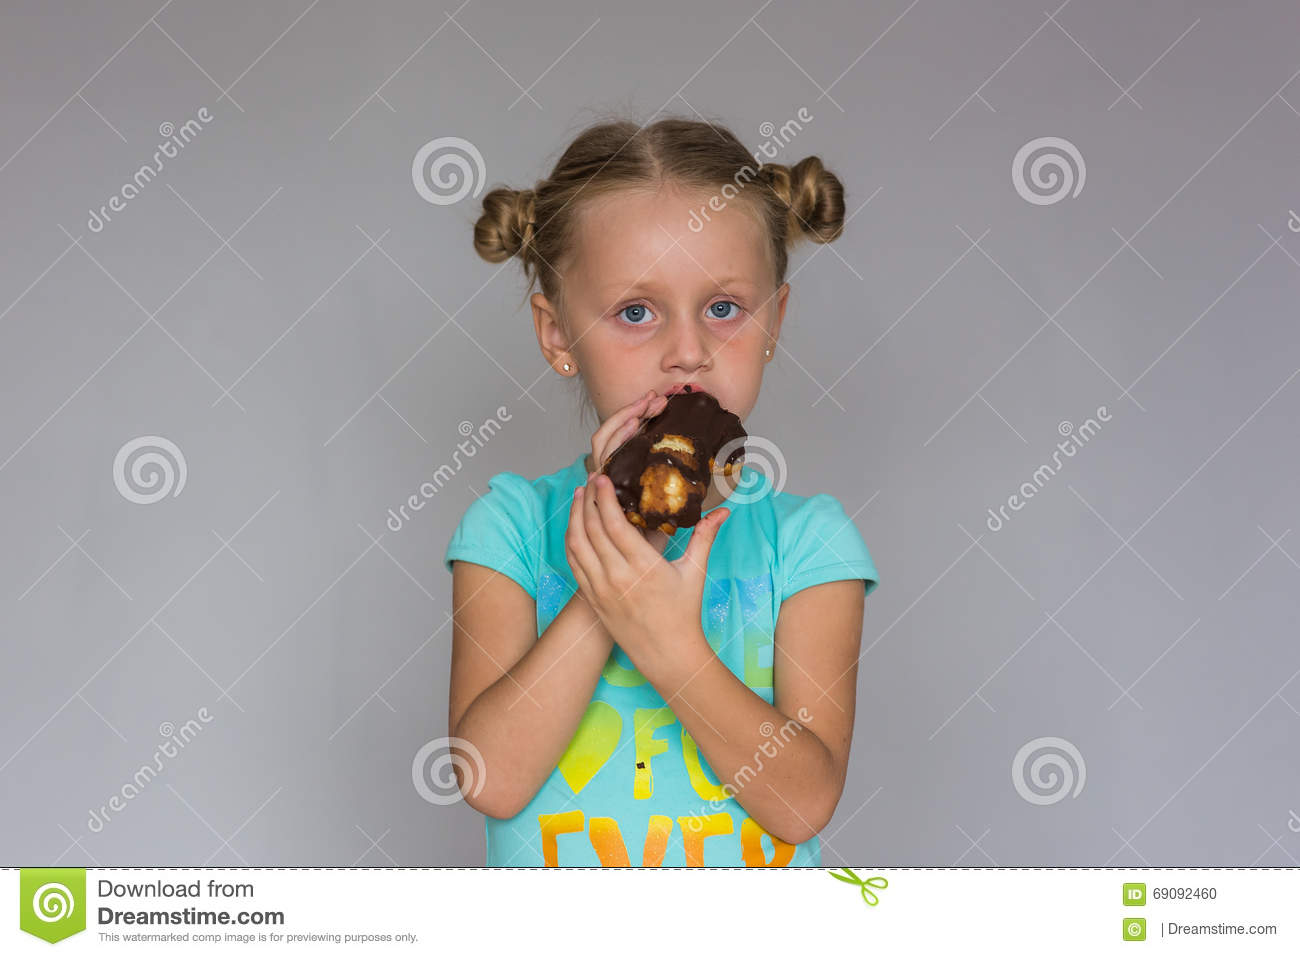 The Girl With Two Plaits Biting A Chocolate Cake Stock Photo Image